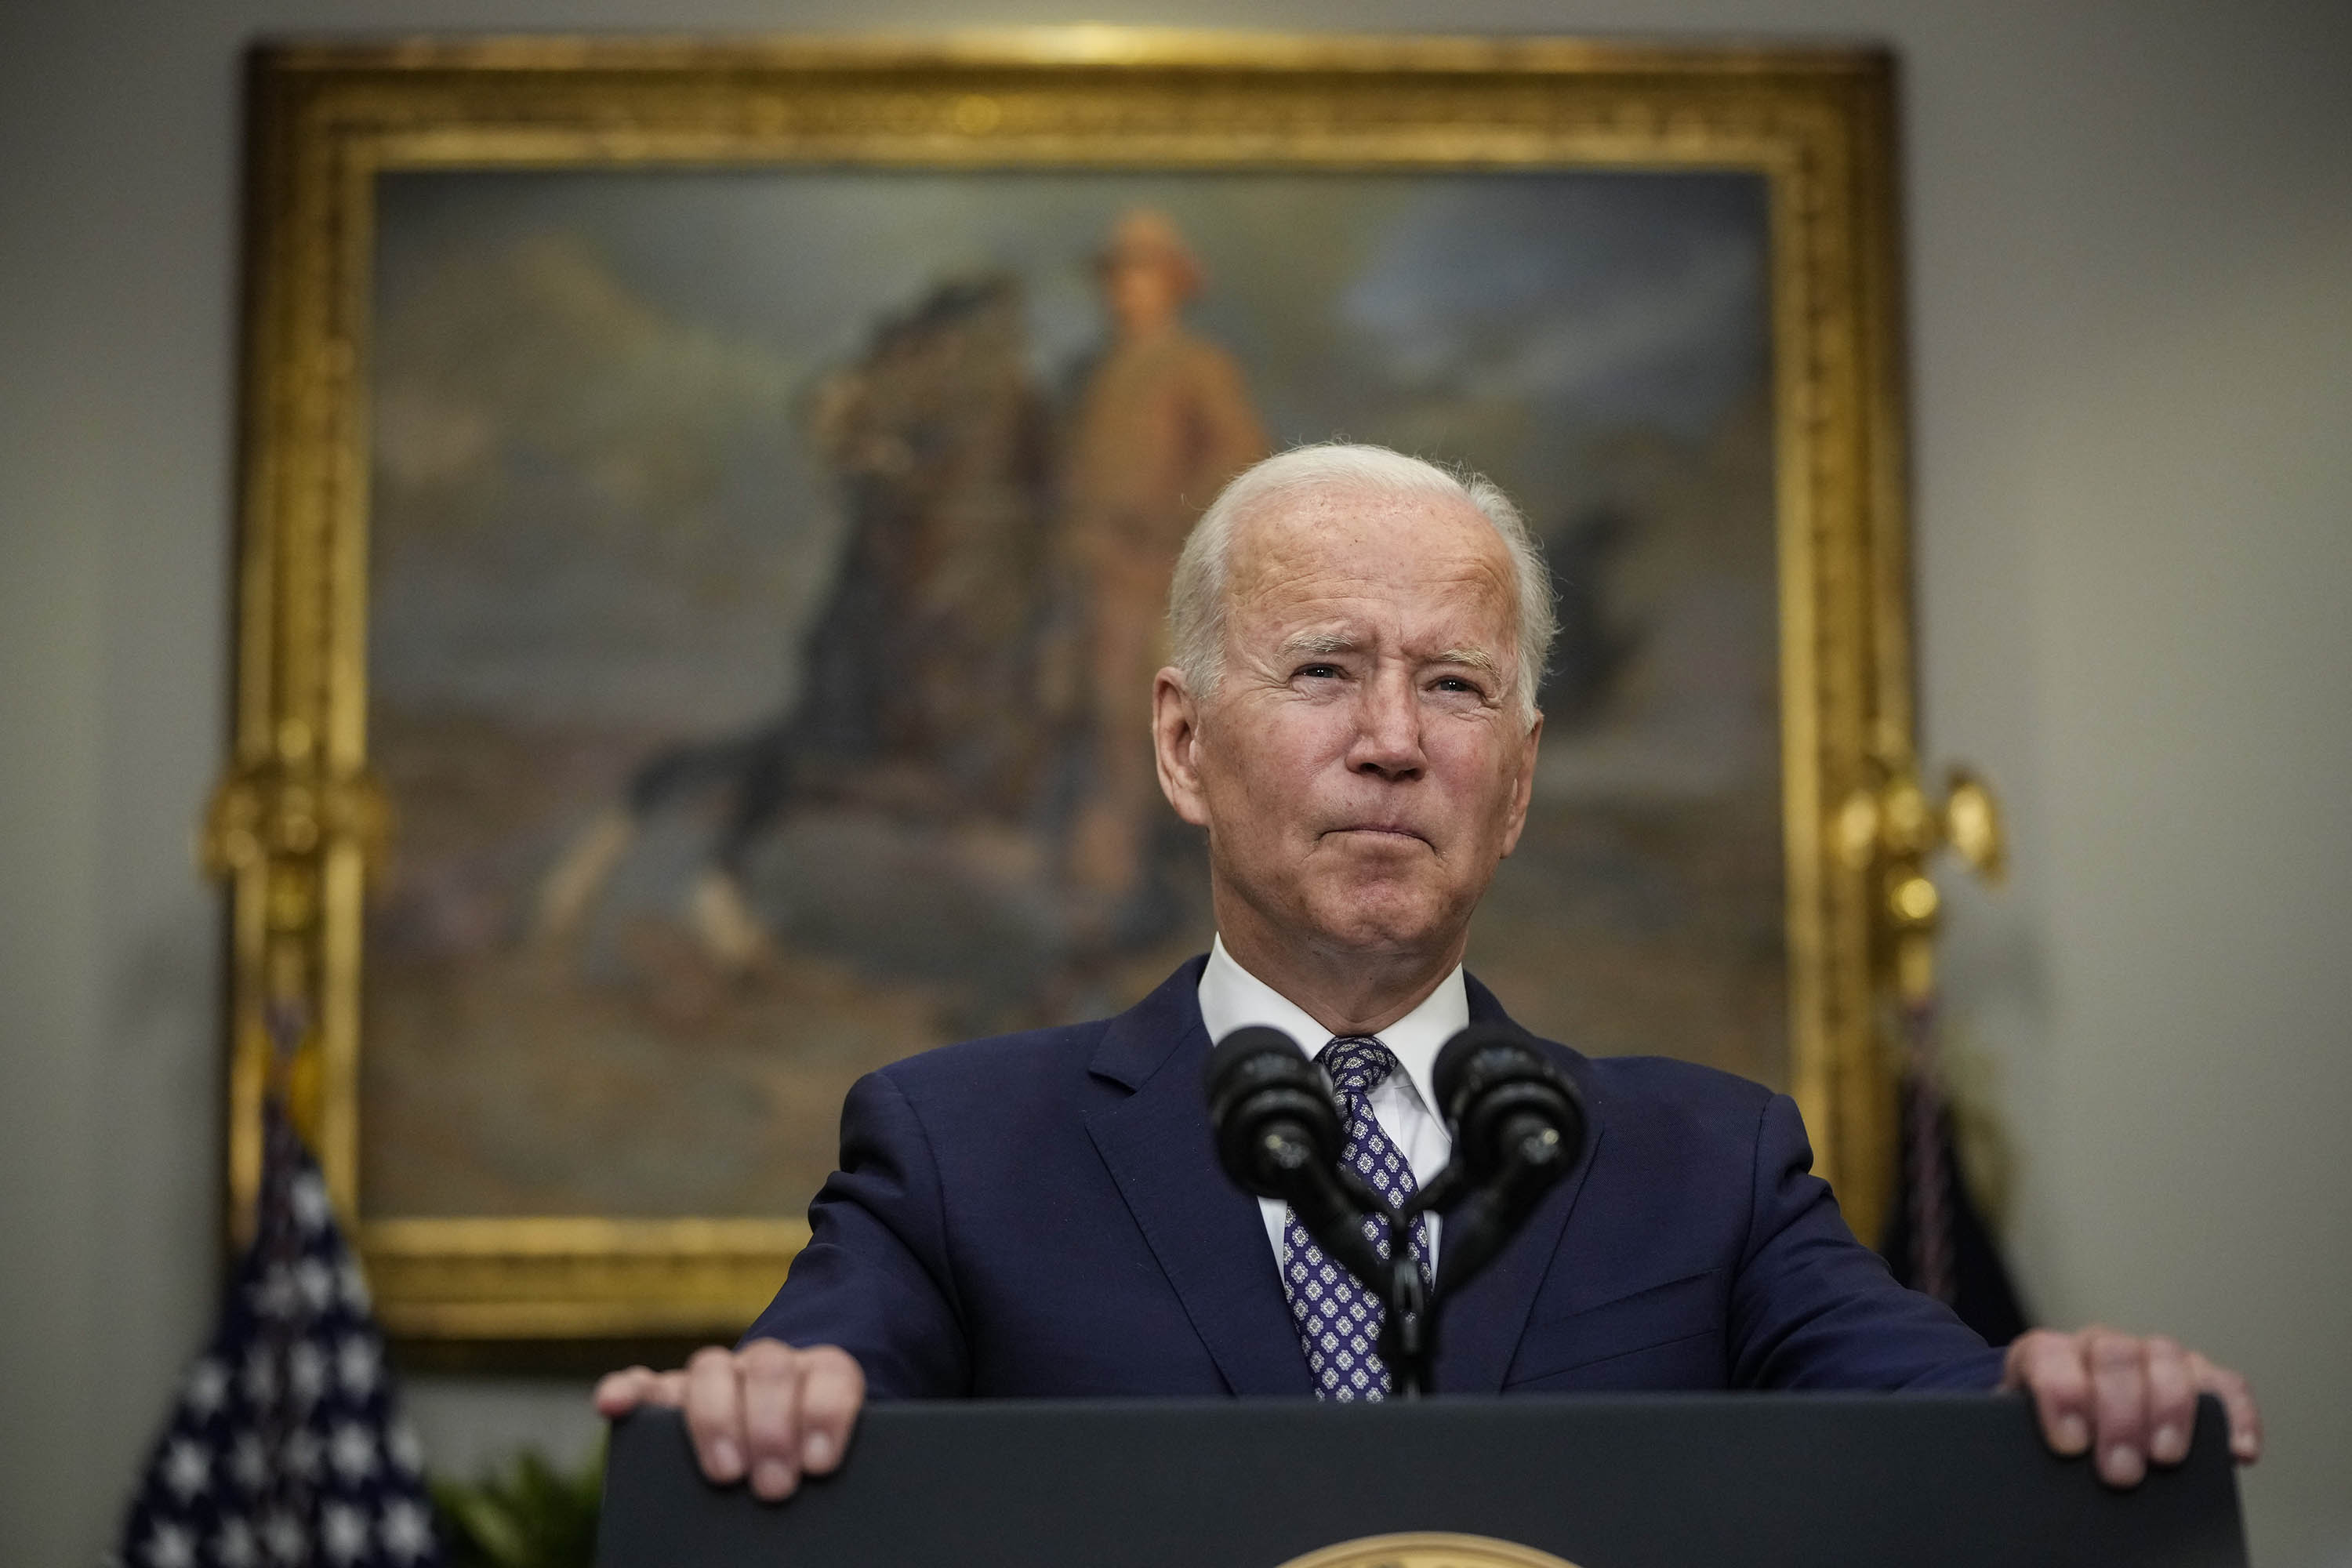 President Joe Biden speaks about the situation in Afghanistan from the White House in Washington, DC, on August 24.